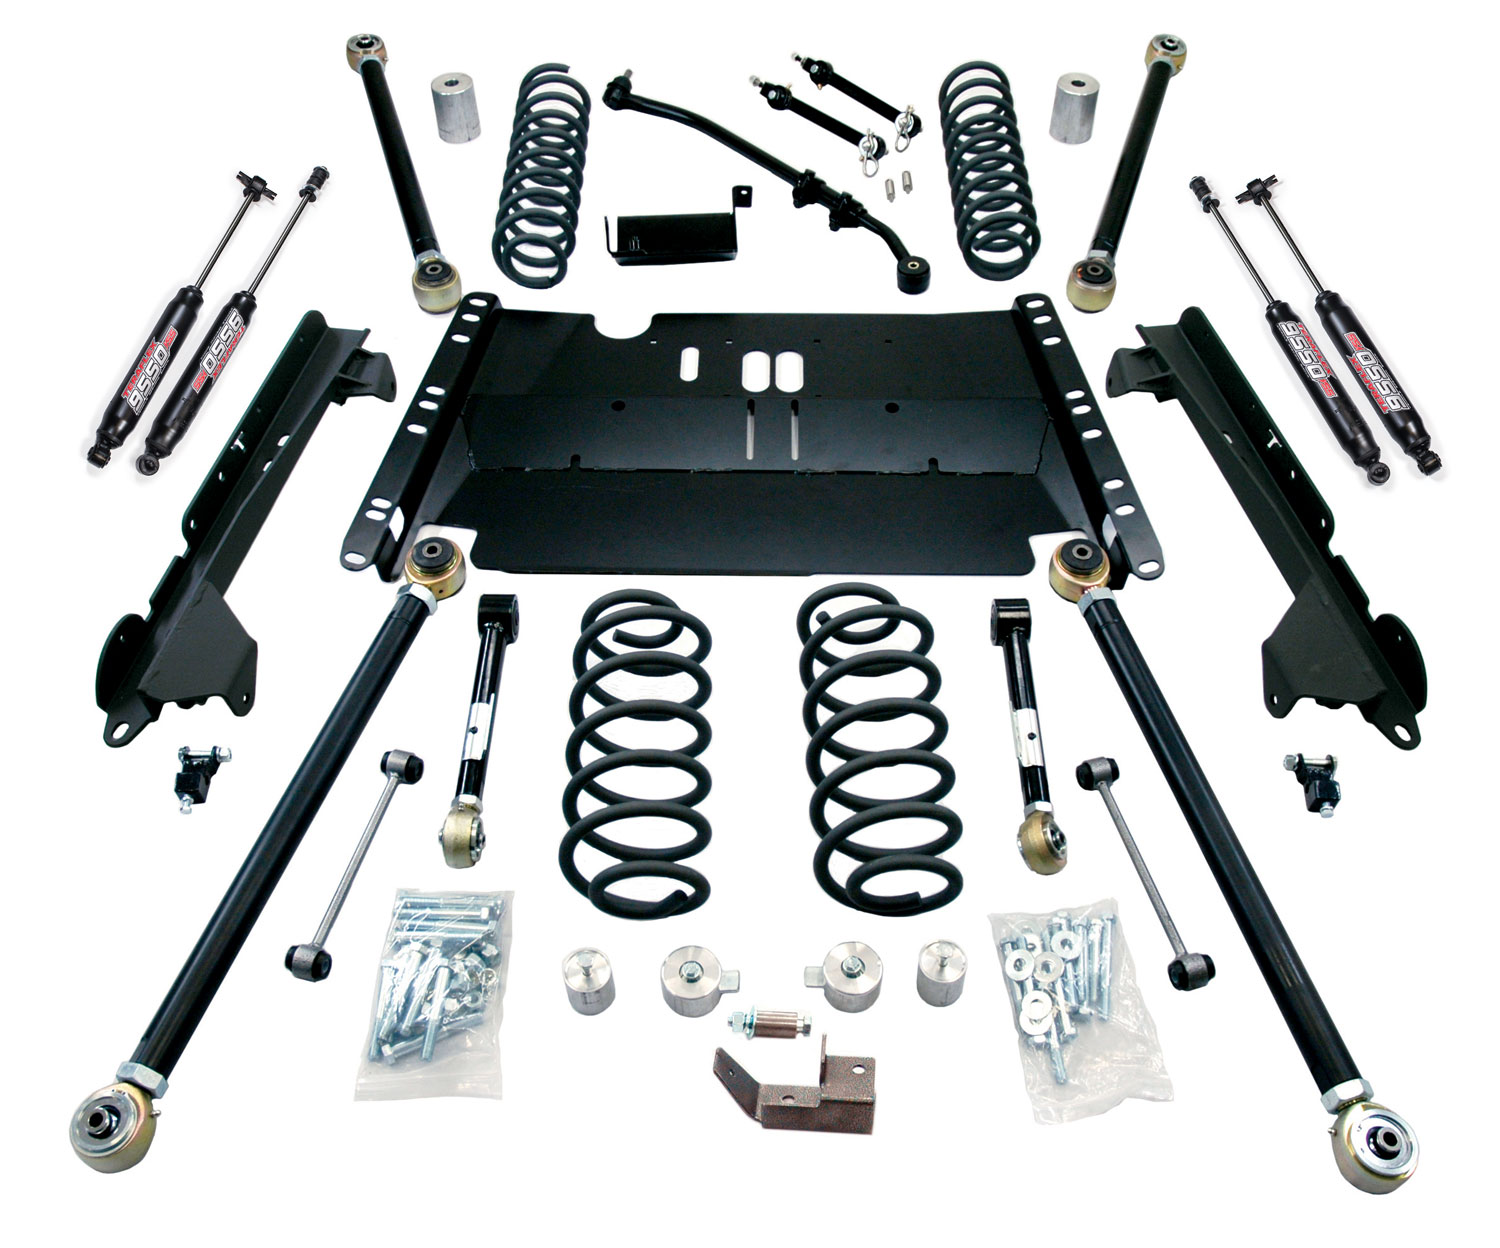 Teraflex 3in Enduro LCG Lift Kit w/9550 Shocks - TJ